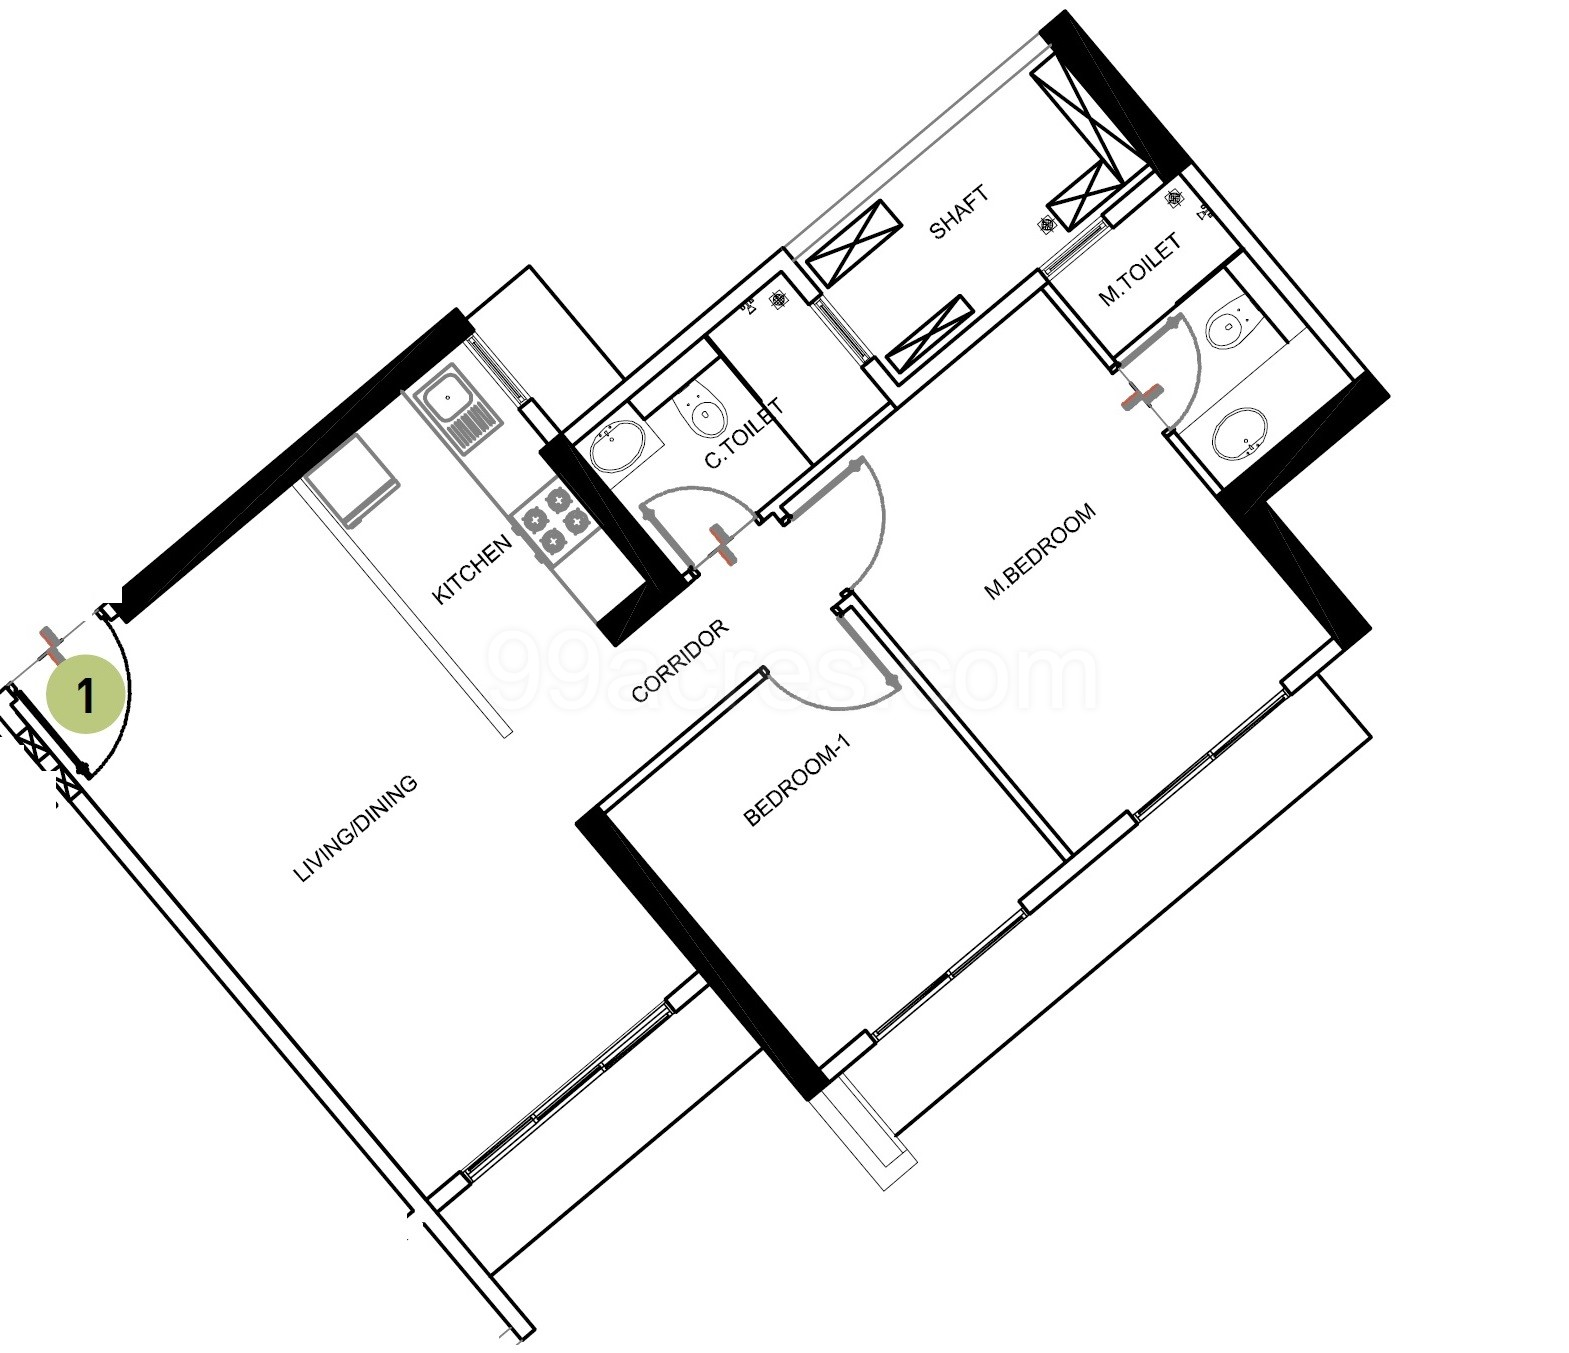 Sd Floor Plan further Rambler House Plans in addition 10143 furthermore Three Level Home Floor Plans Layouts besides Bungalow House Plans Single Storey. on best 3 bedroom house plans